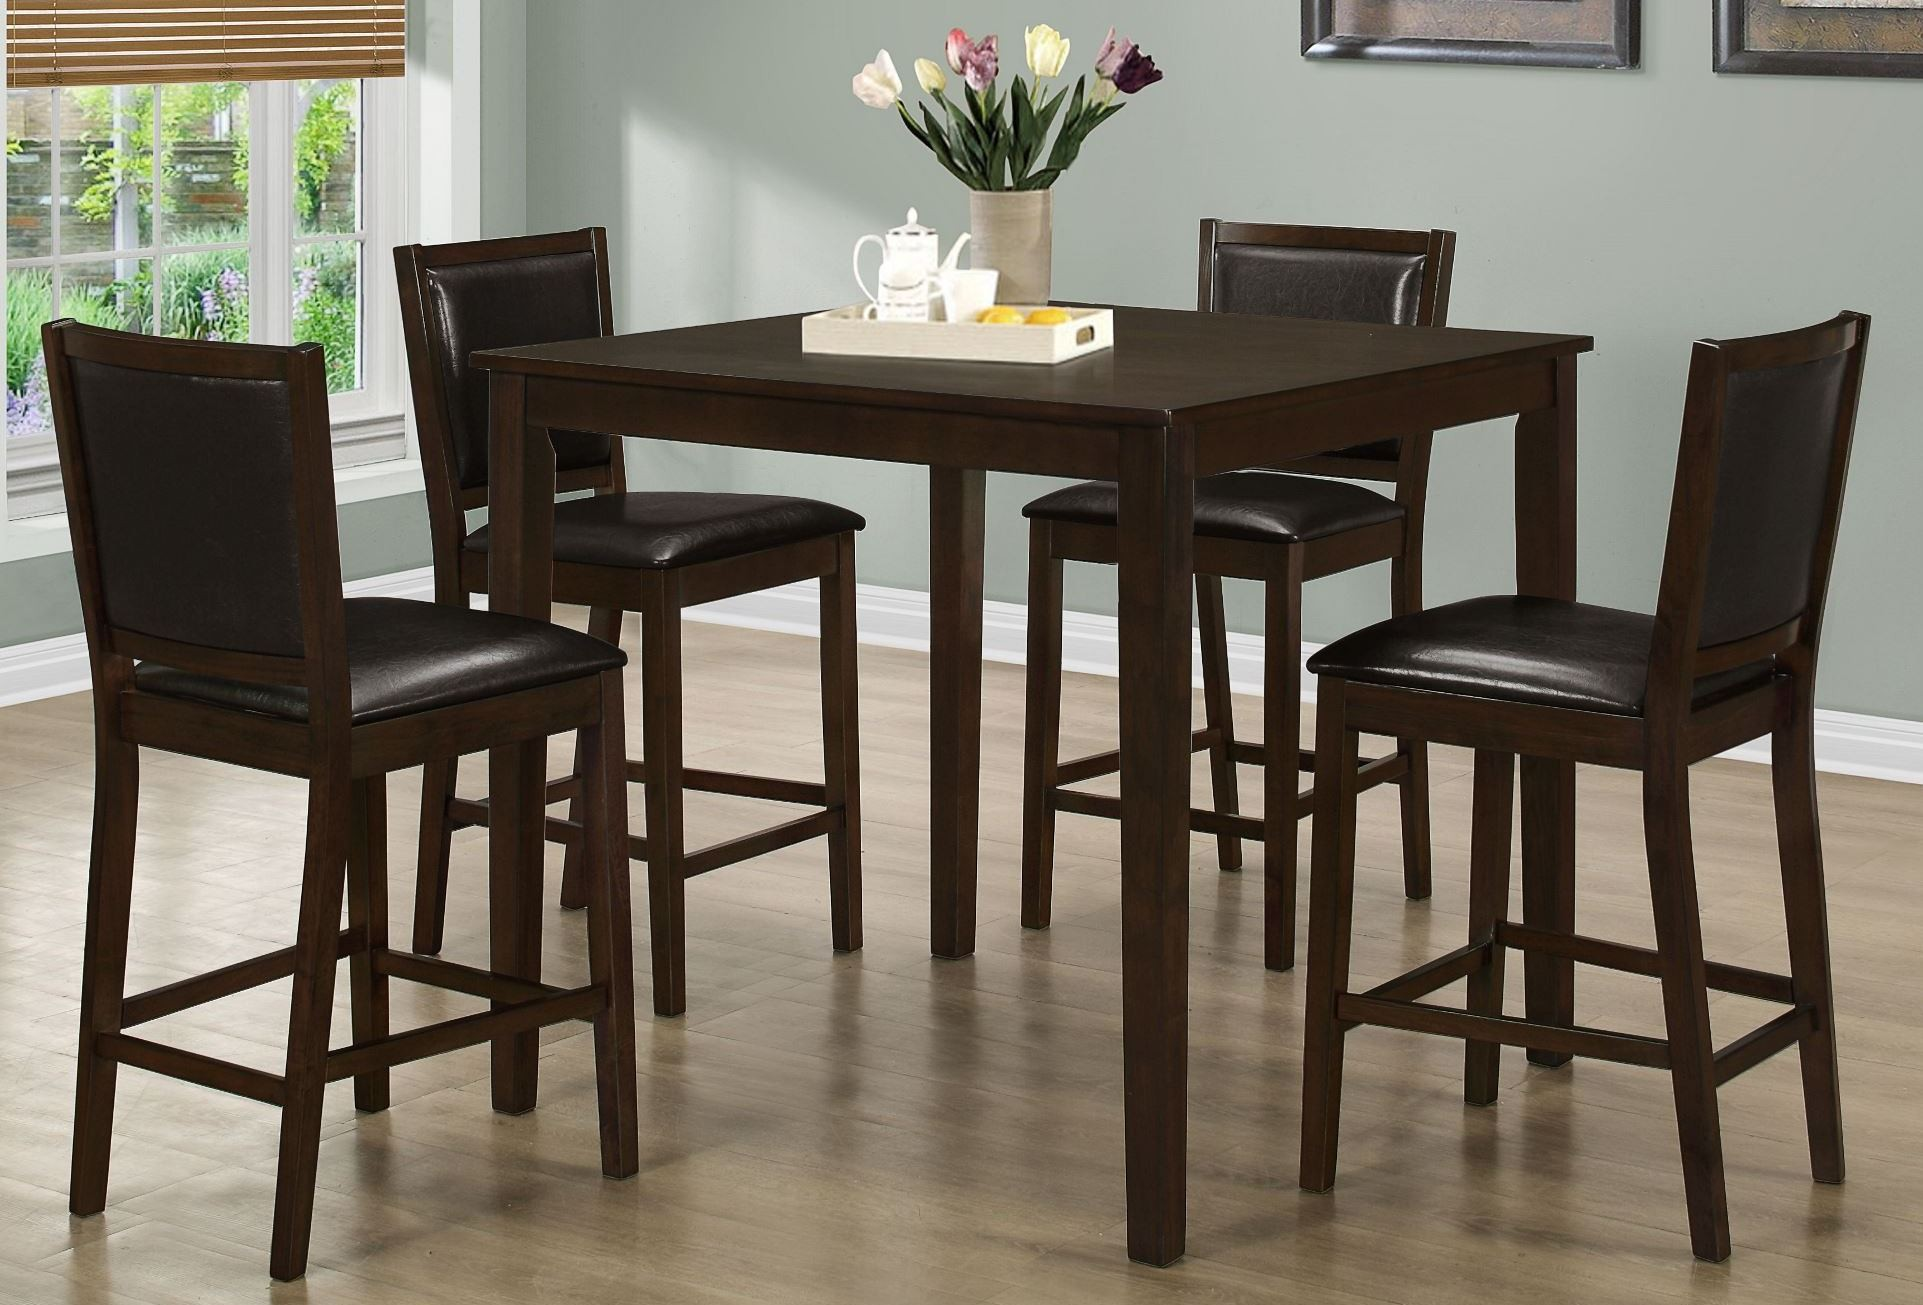 9 Piece Dining Room Table Sets Walnut 5 Piece Counter Height Dining Room Set From Monarch